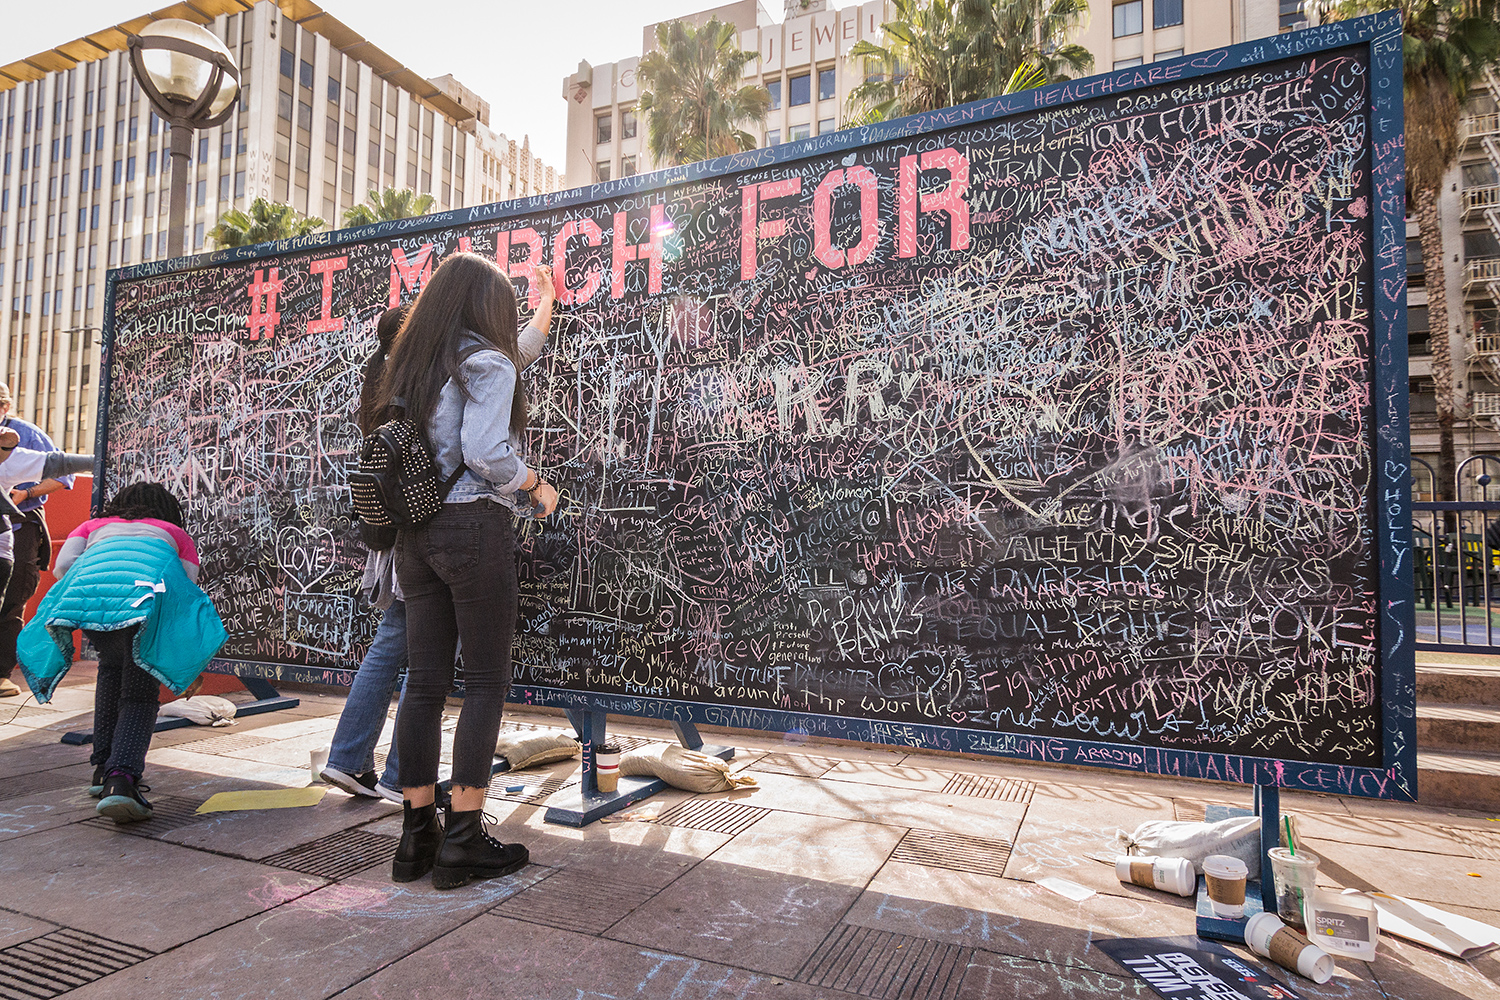 (2017) Hashtags like #IMarchFor, #WomensMarch and #WomensMarchLA are used on social media to crowd source reasons people in Los Angeles and around the world supported the Women's March on Washington and its sister cities' marches.